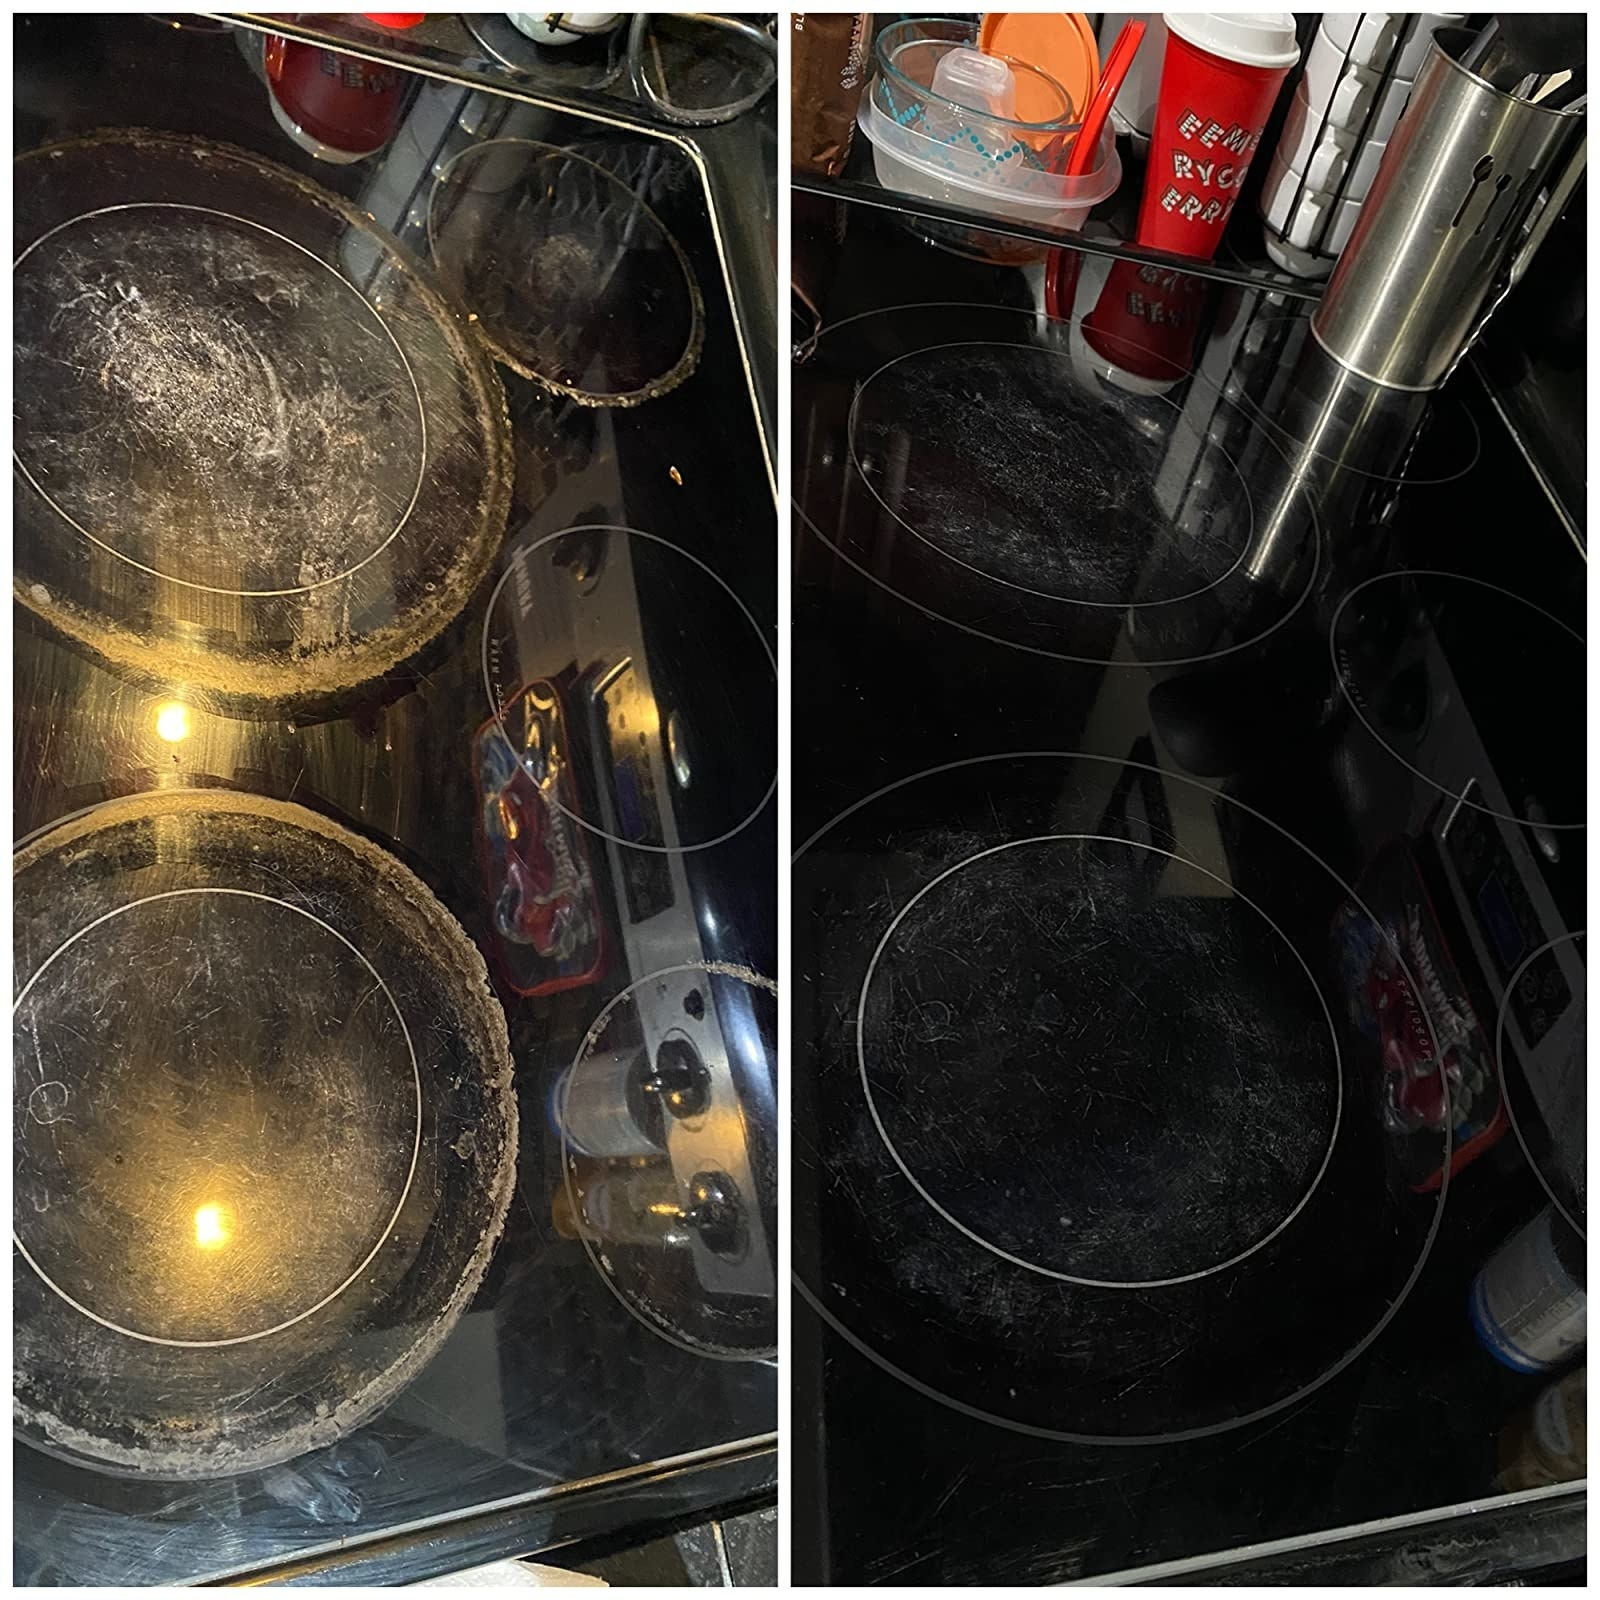 A customer review before and after photo of their stovetop, showing it is completely cleaned after using the cleaning kit